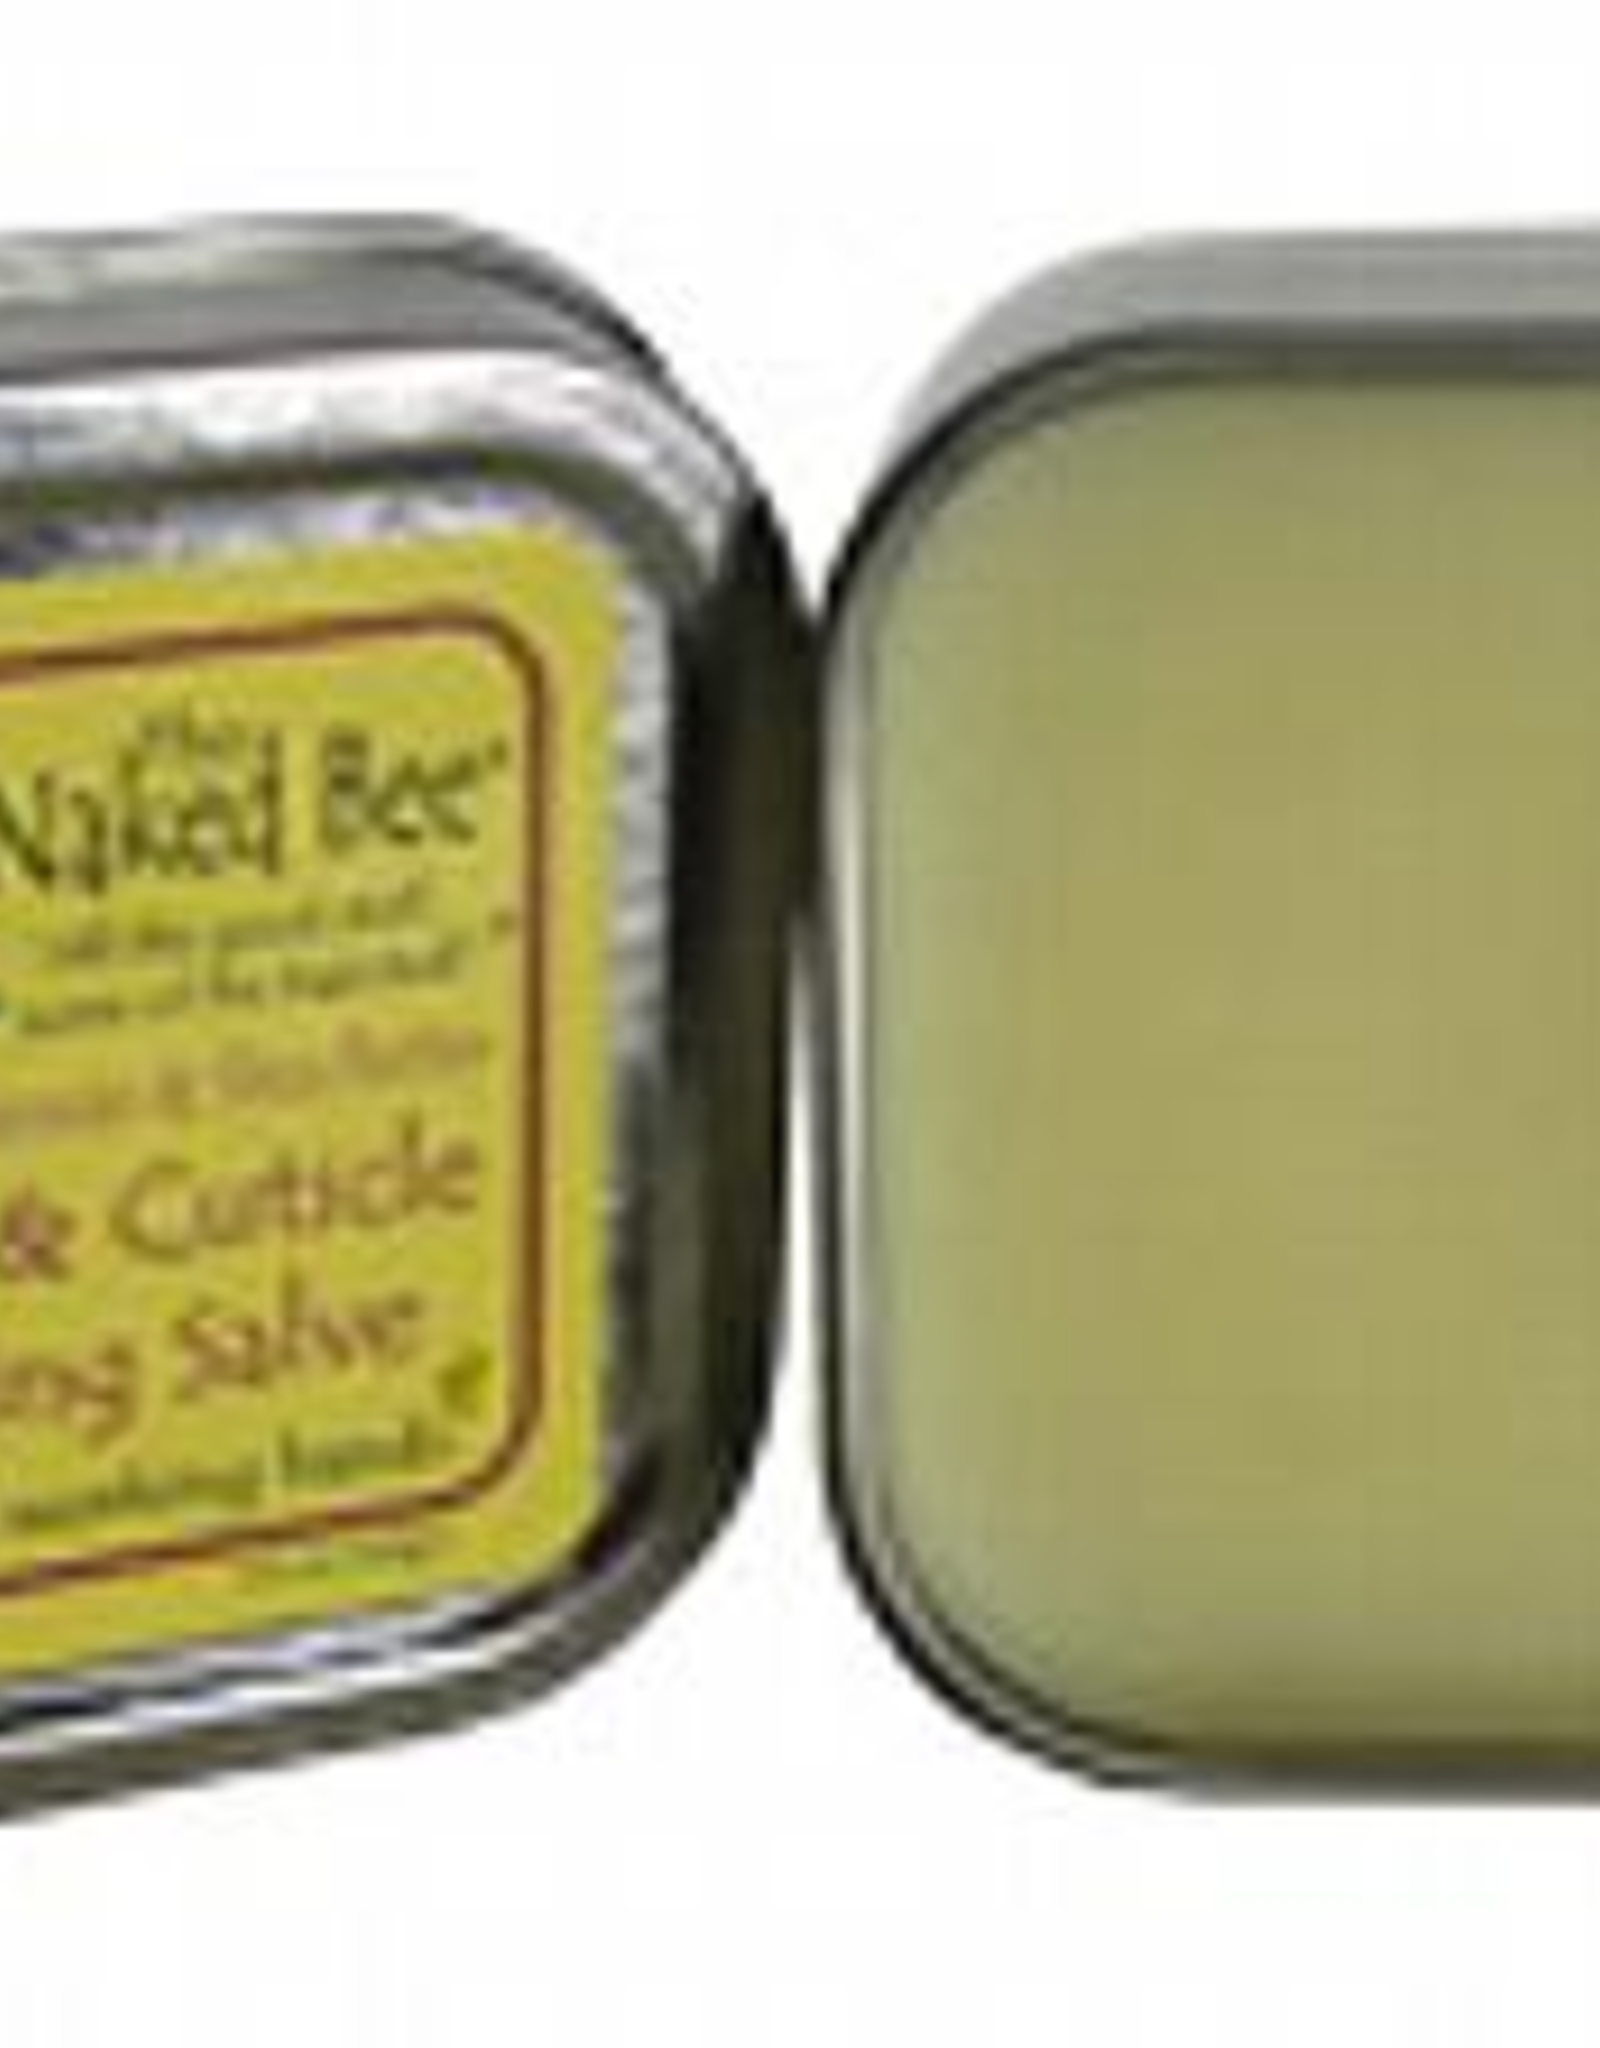 NAKED BEE The Naked Bee Hand and Cuticle Healing Salve